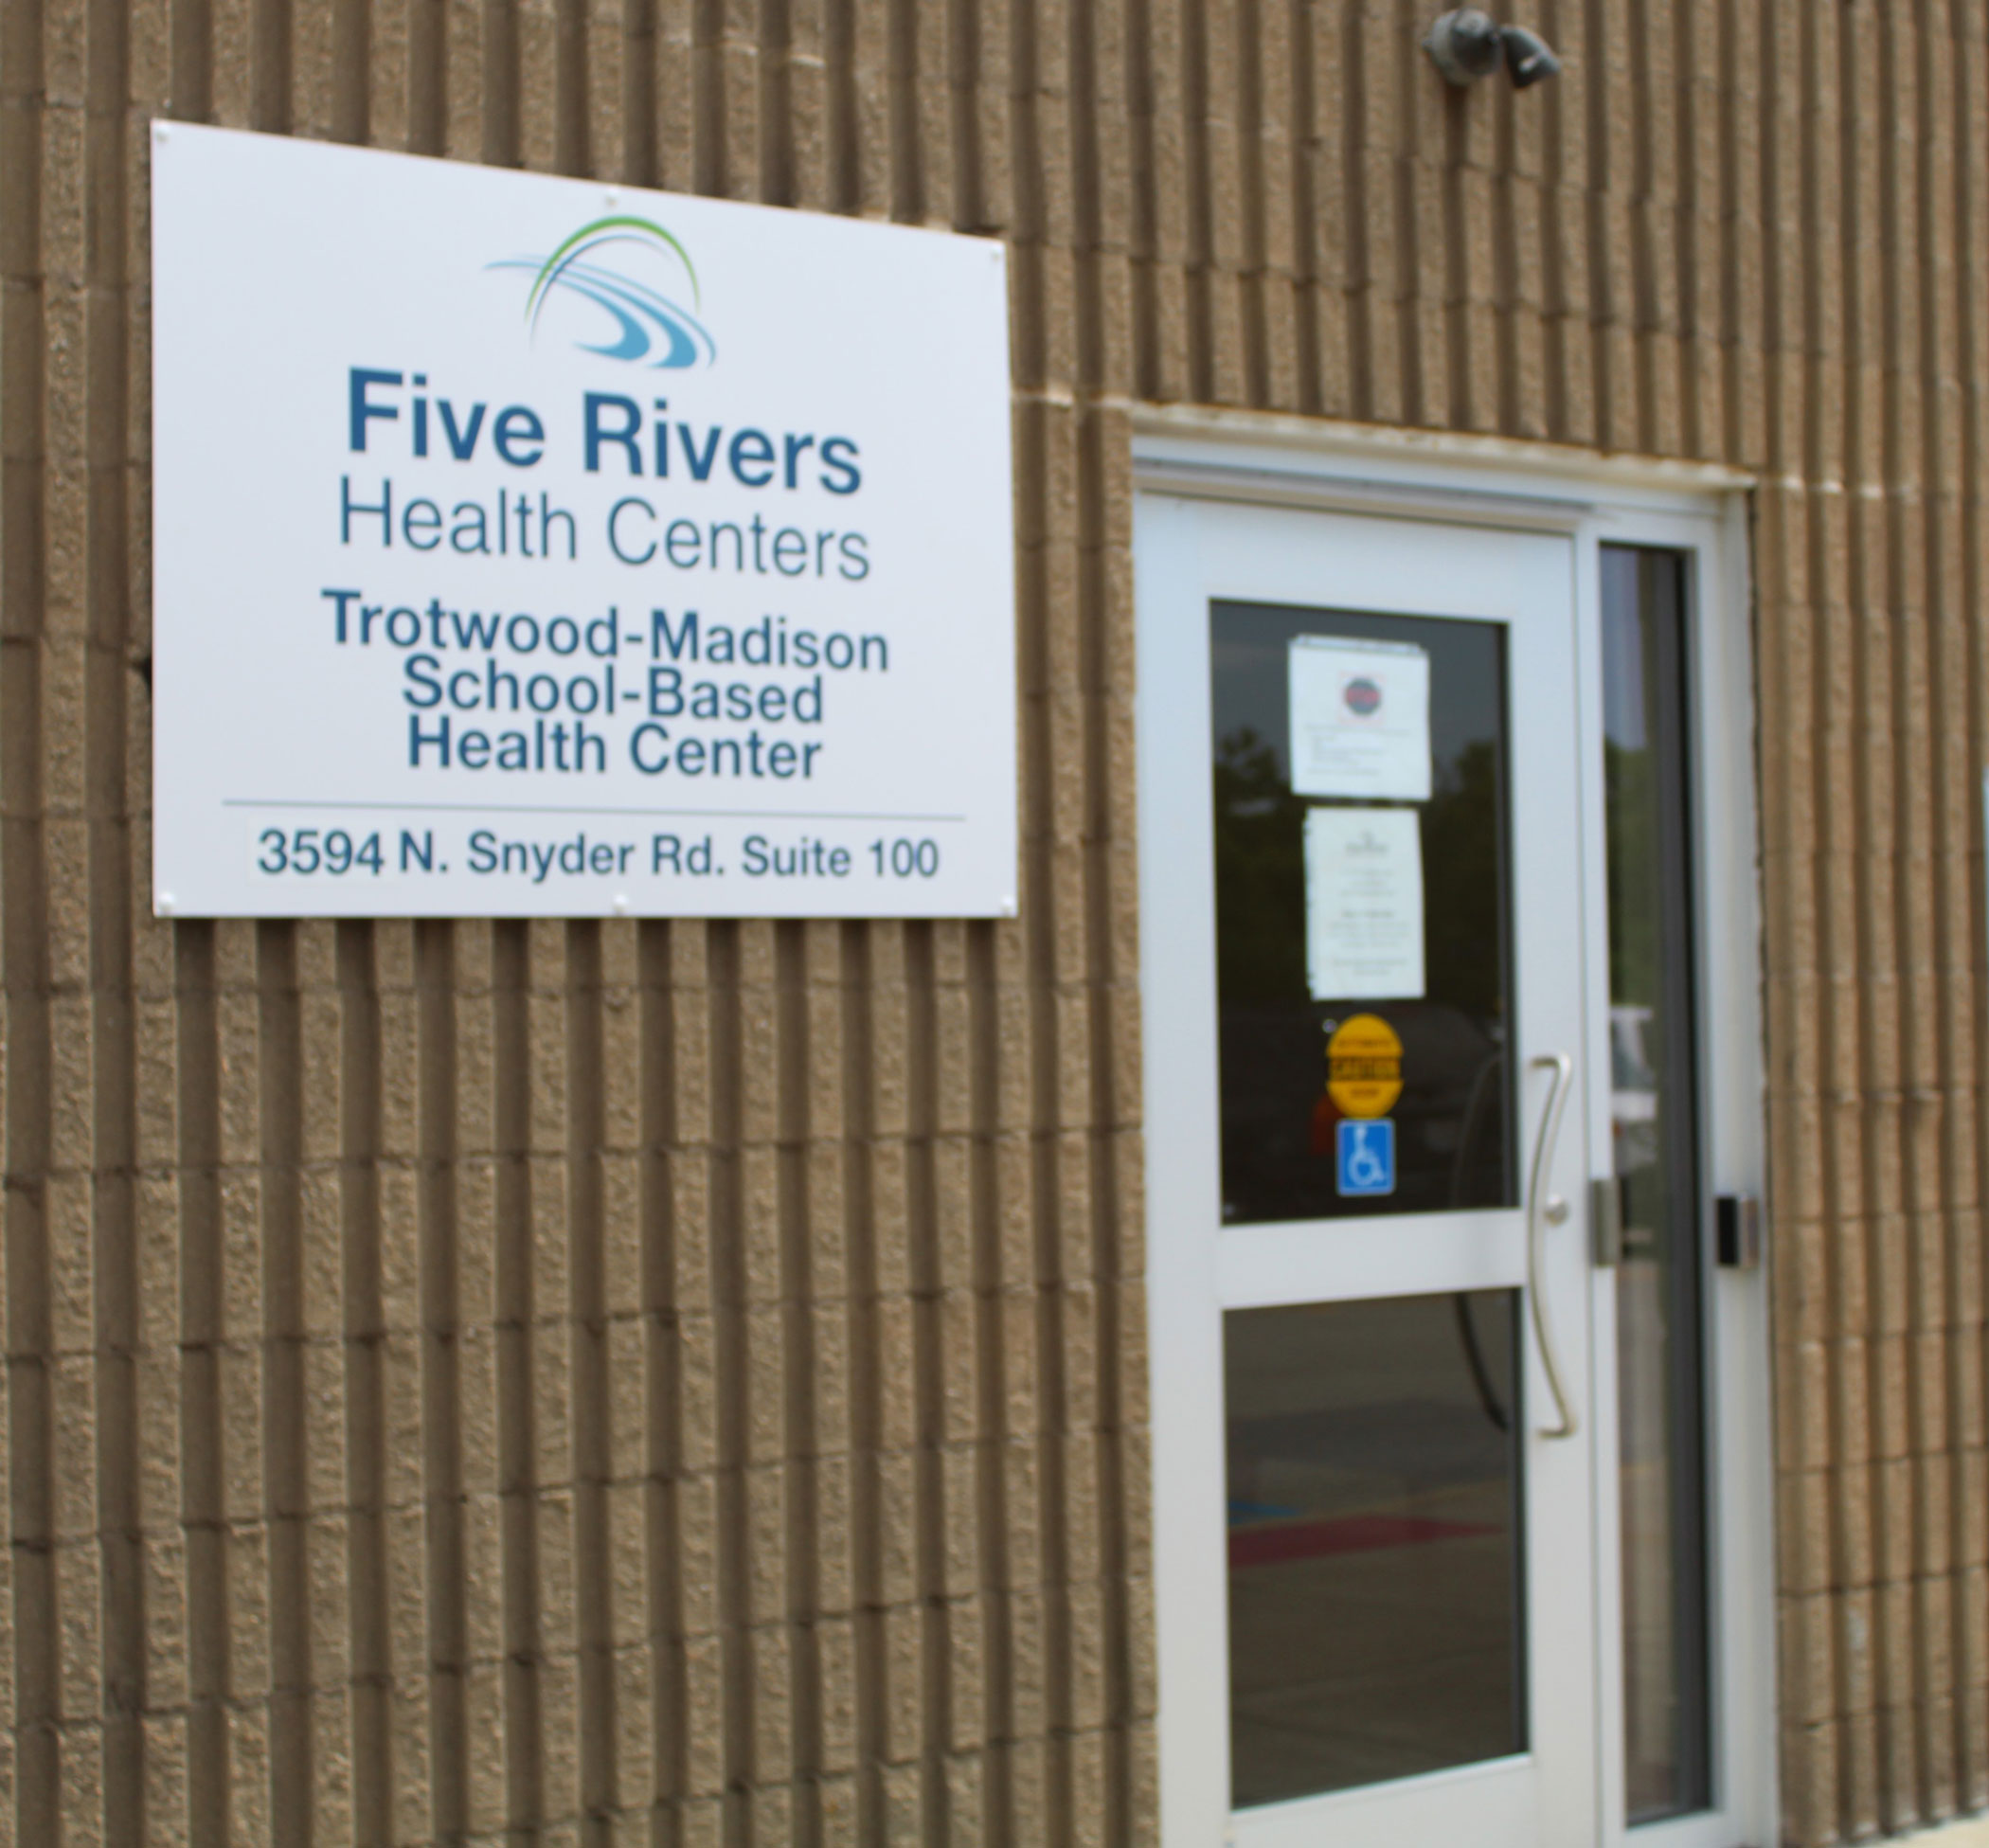 Trotwood-Madison School-Based Health Center